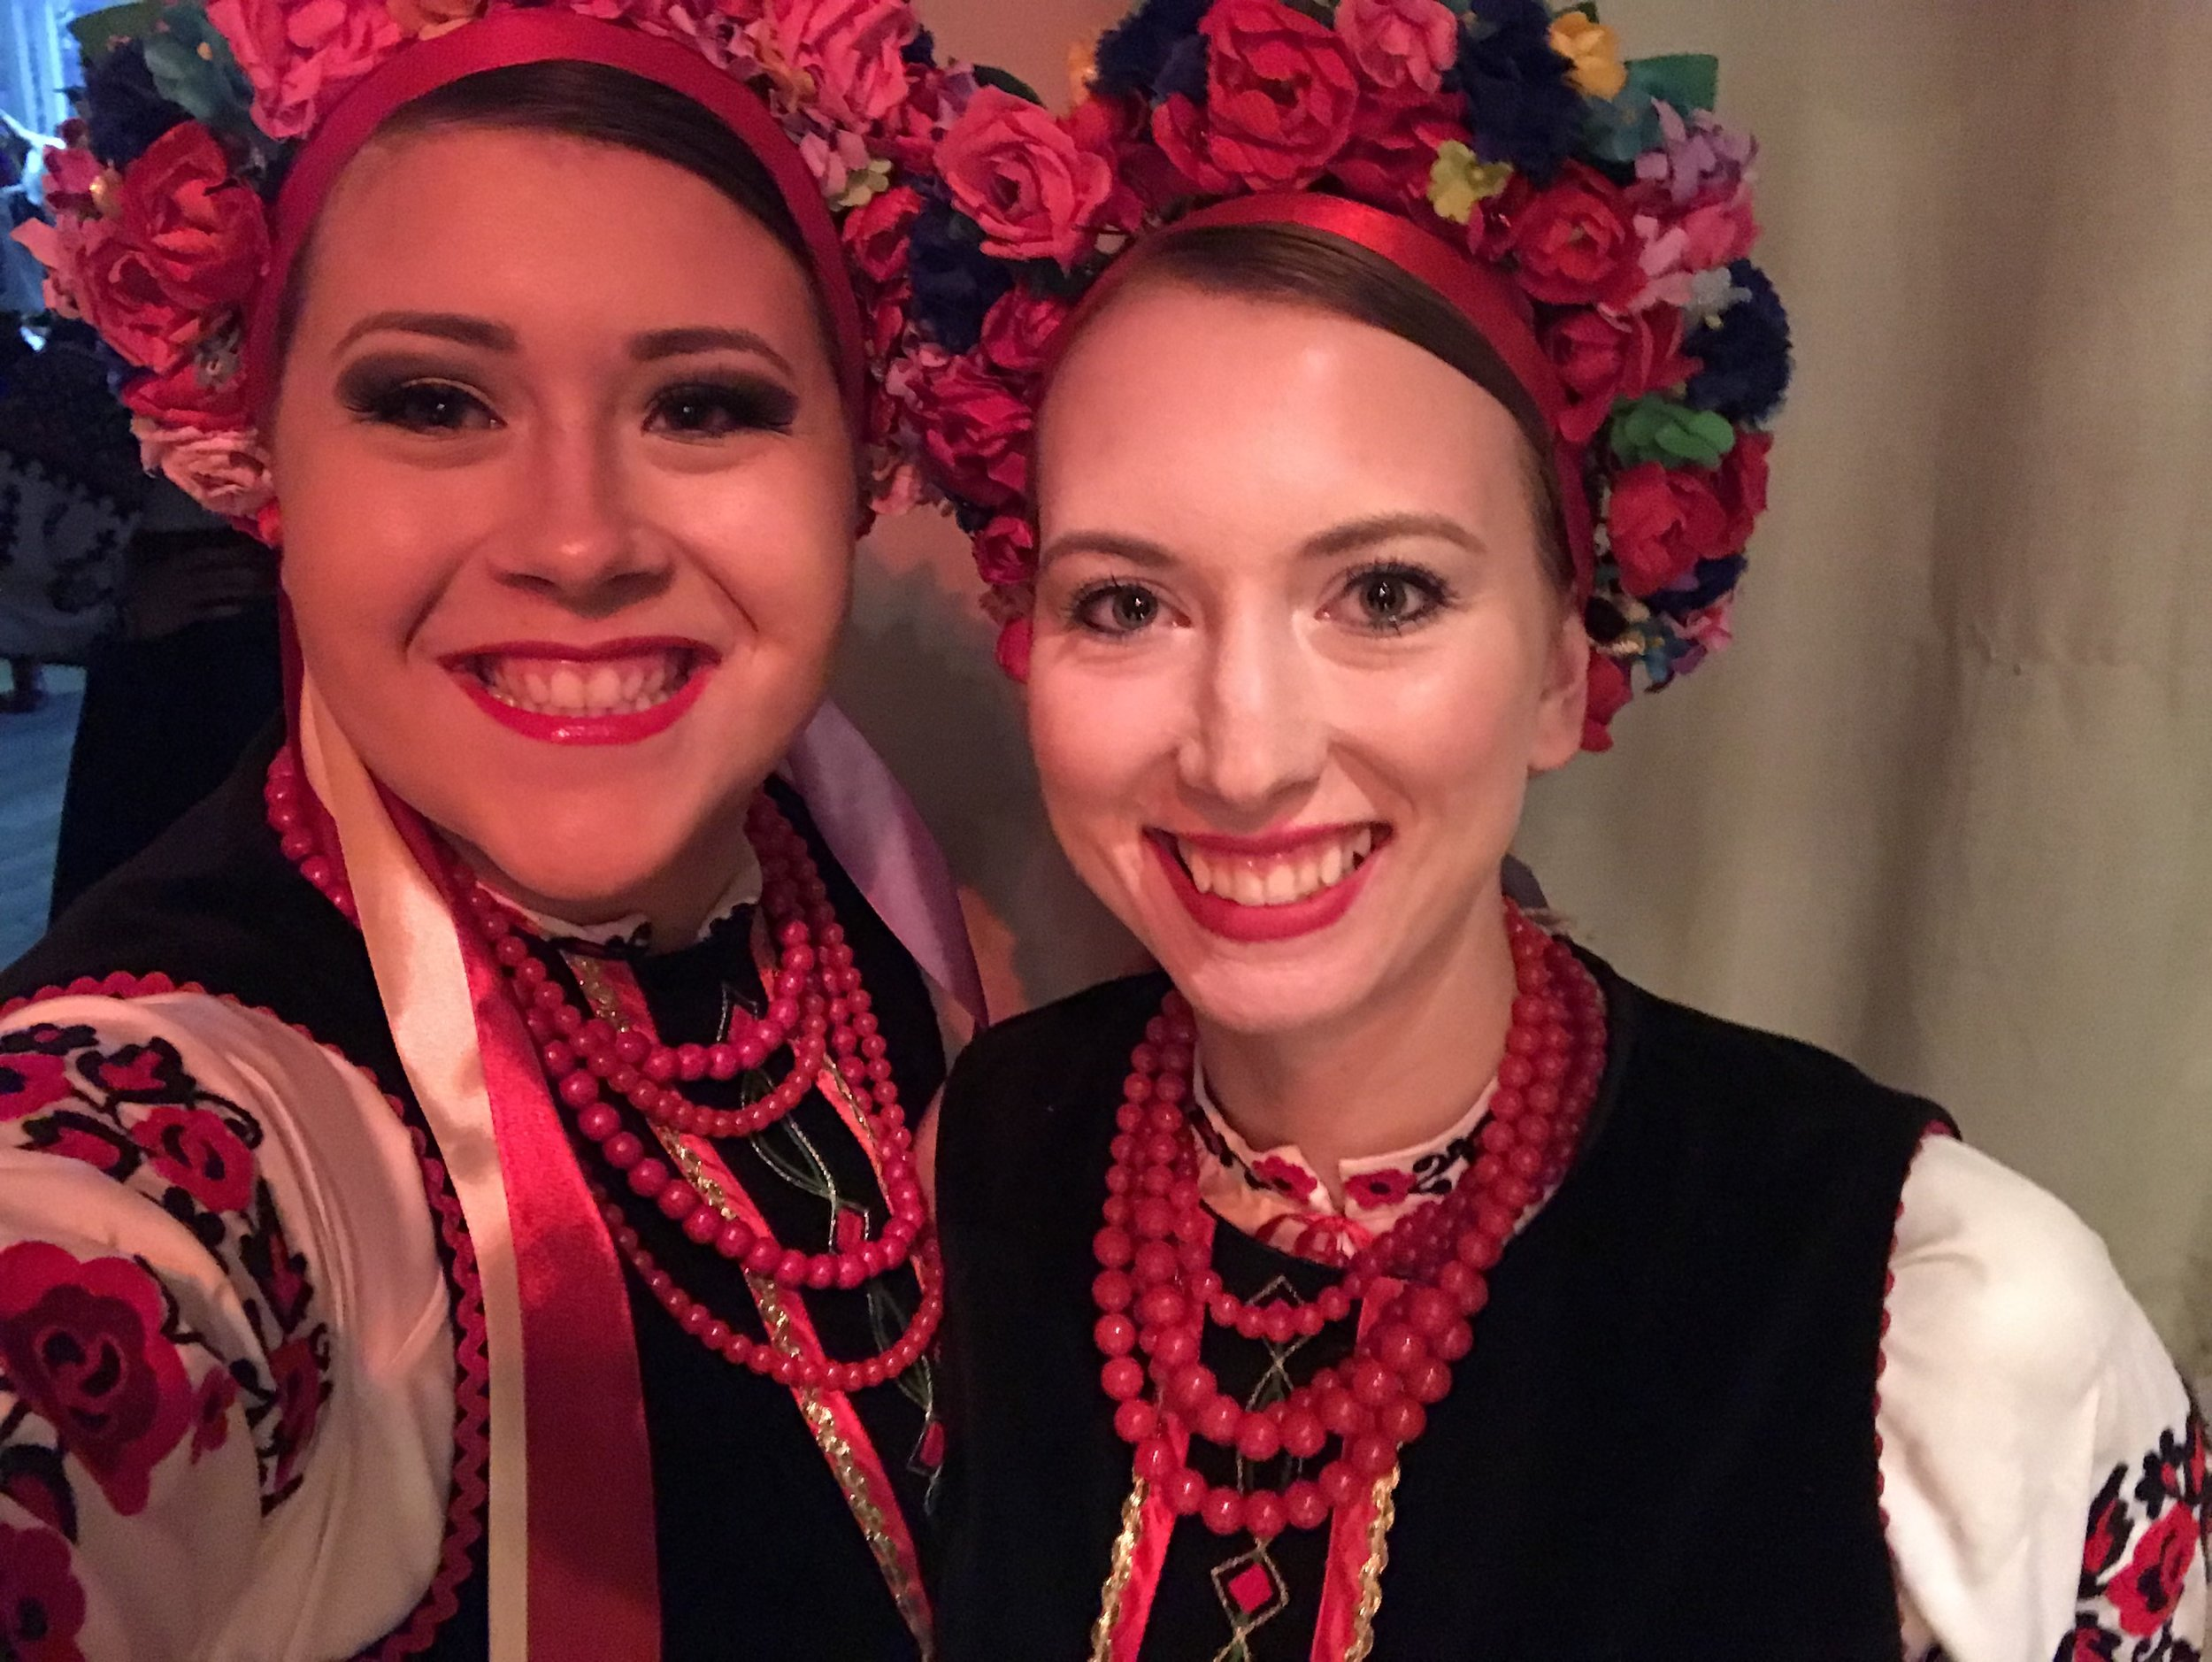 Hannah and I living the dream, performing Ukrainian dance with a dance group from Ukraine while in Ukraine.